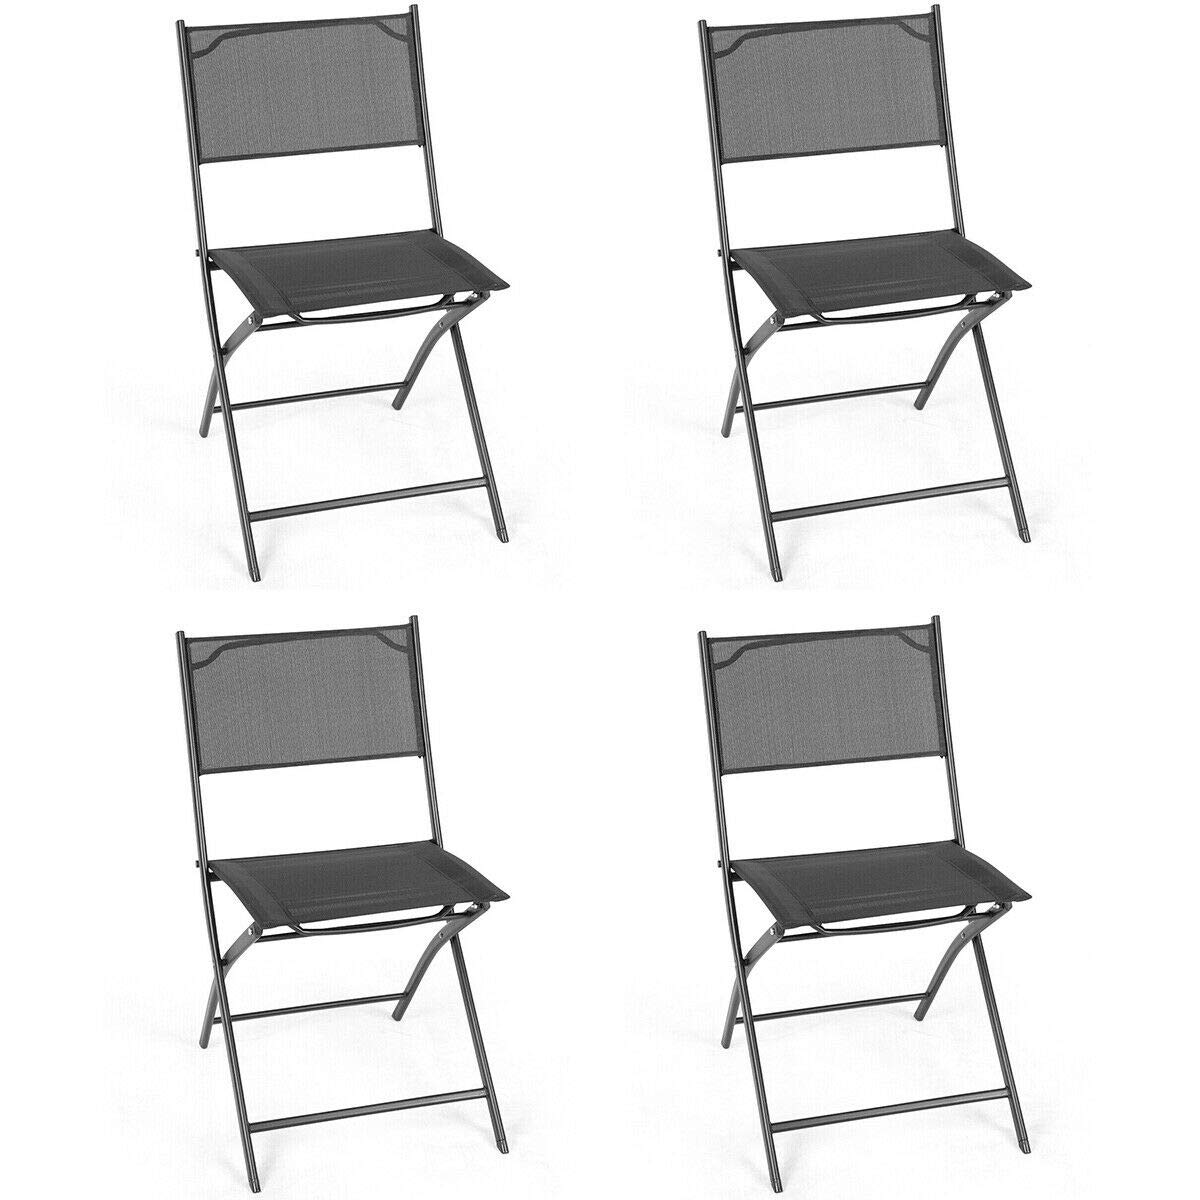 Giantex Set of 4 Outdoor Patio Folding Chairs Camping Deck Garden Pool Beach Furniture Black